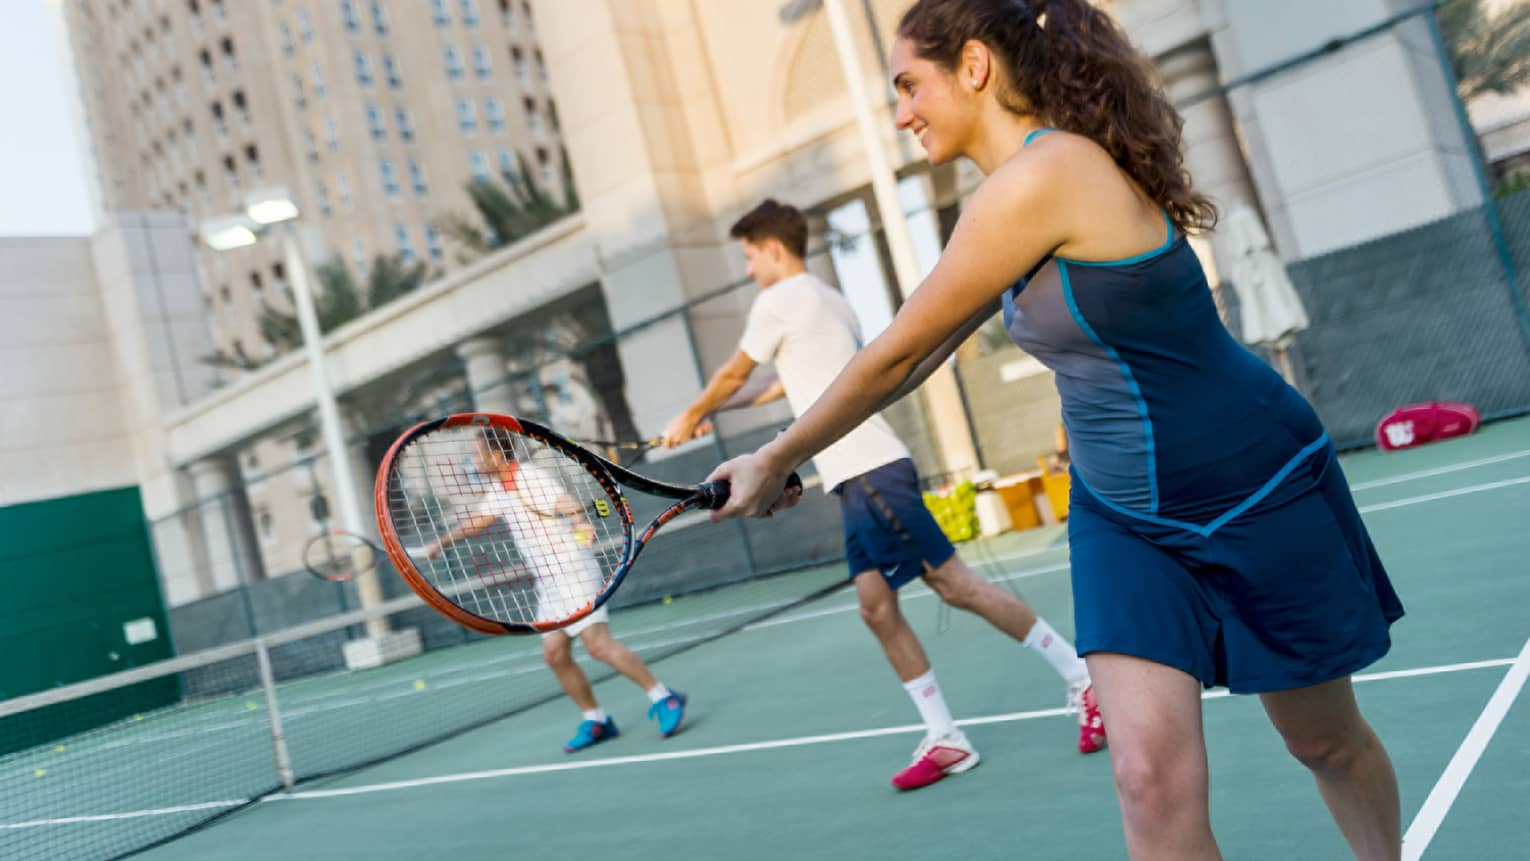 Woman in tennis outfit holds out racket, two people in background on court